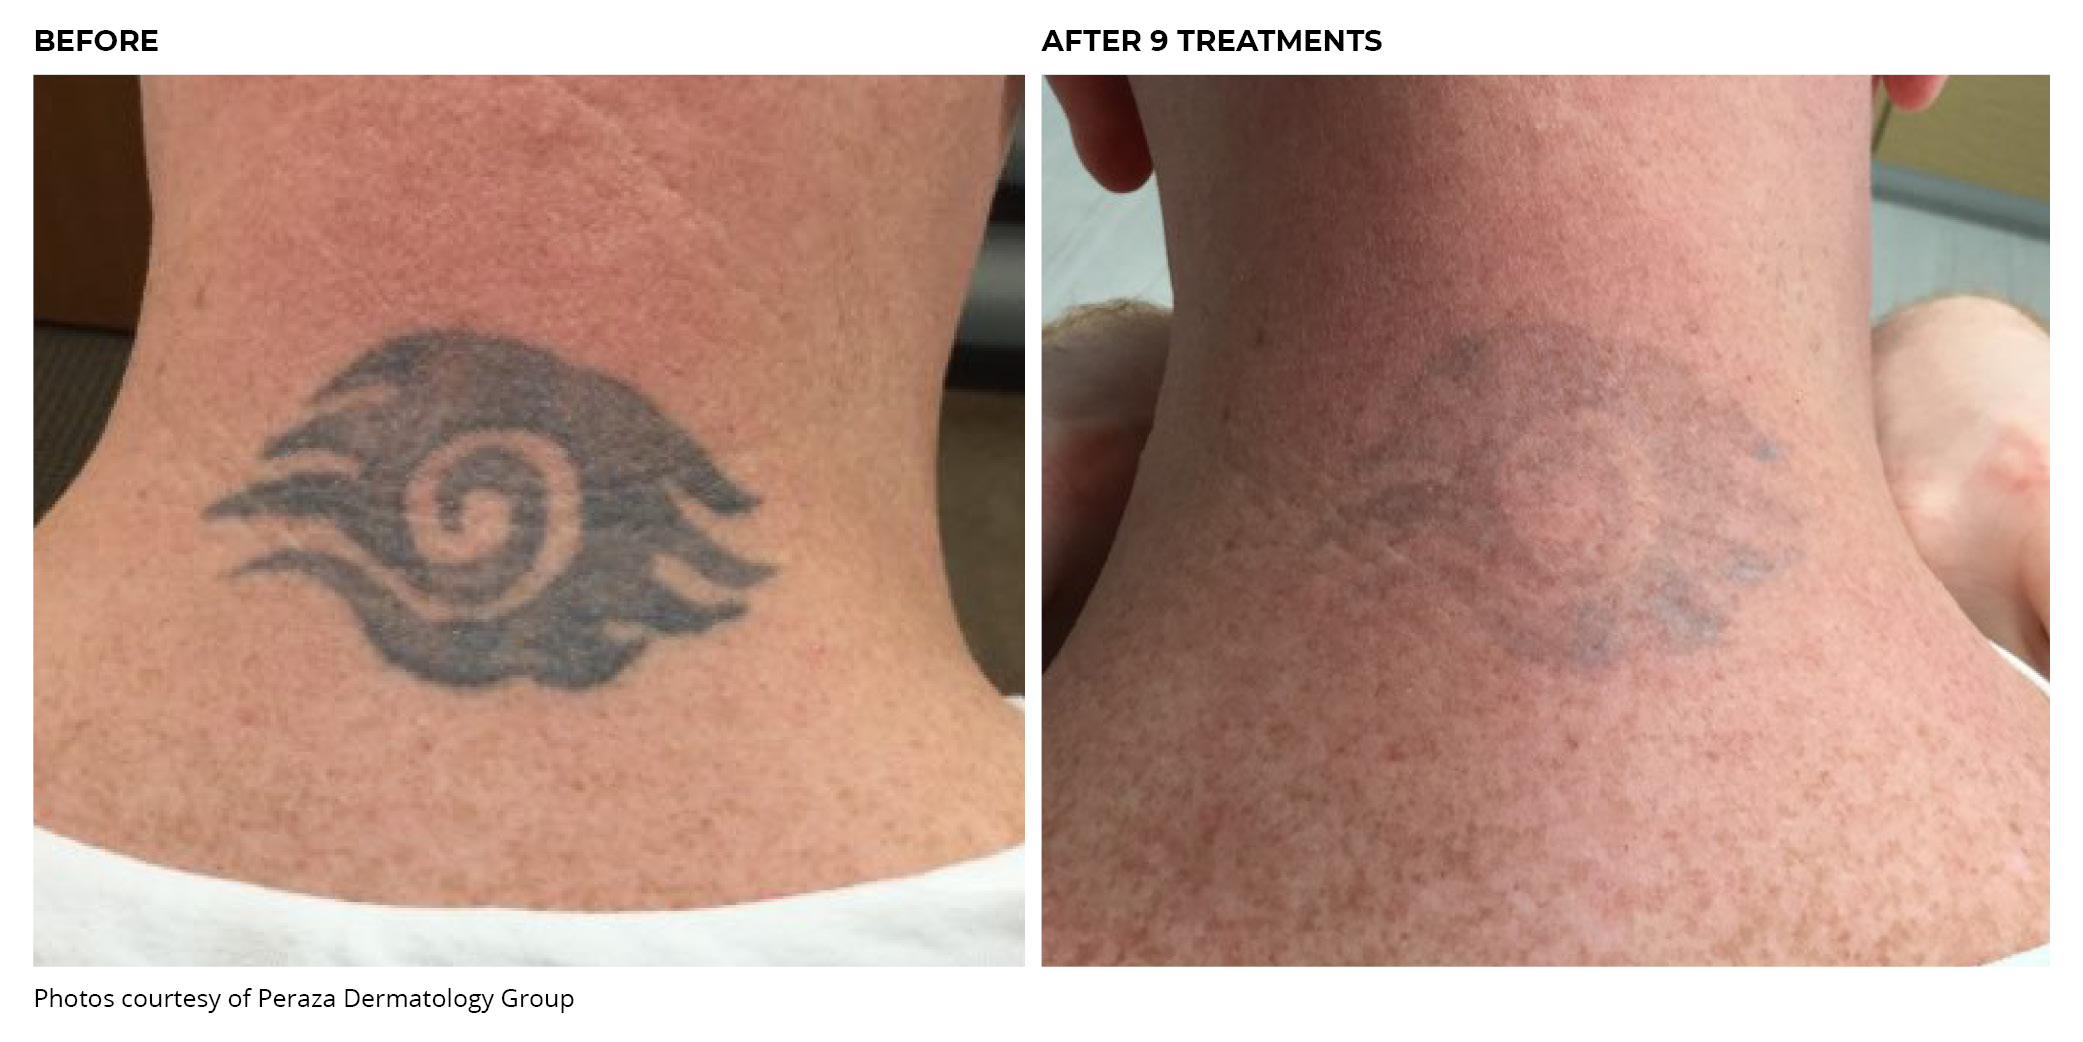 PiQo4 Tattoo Before and After